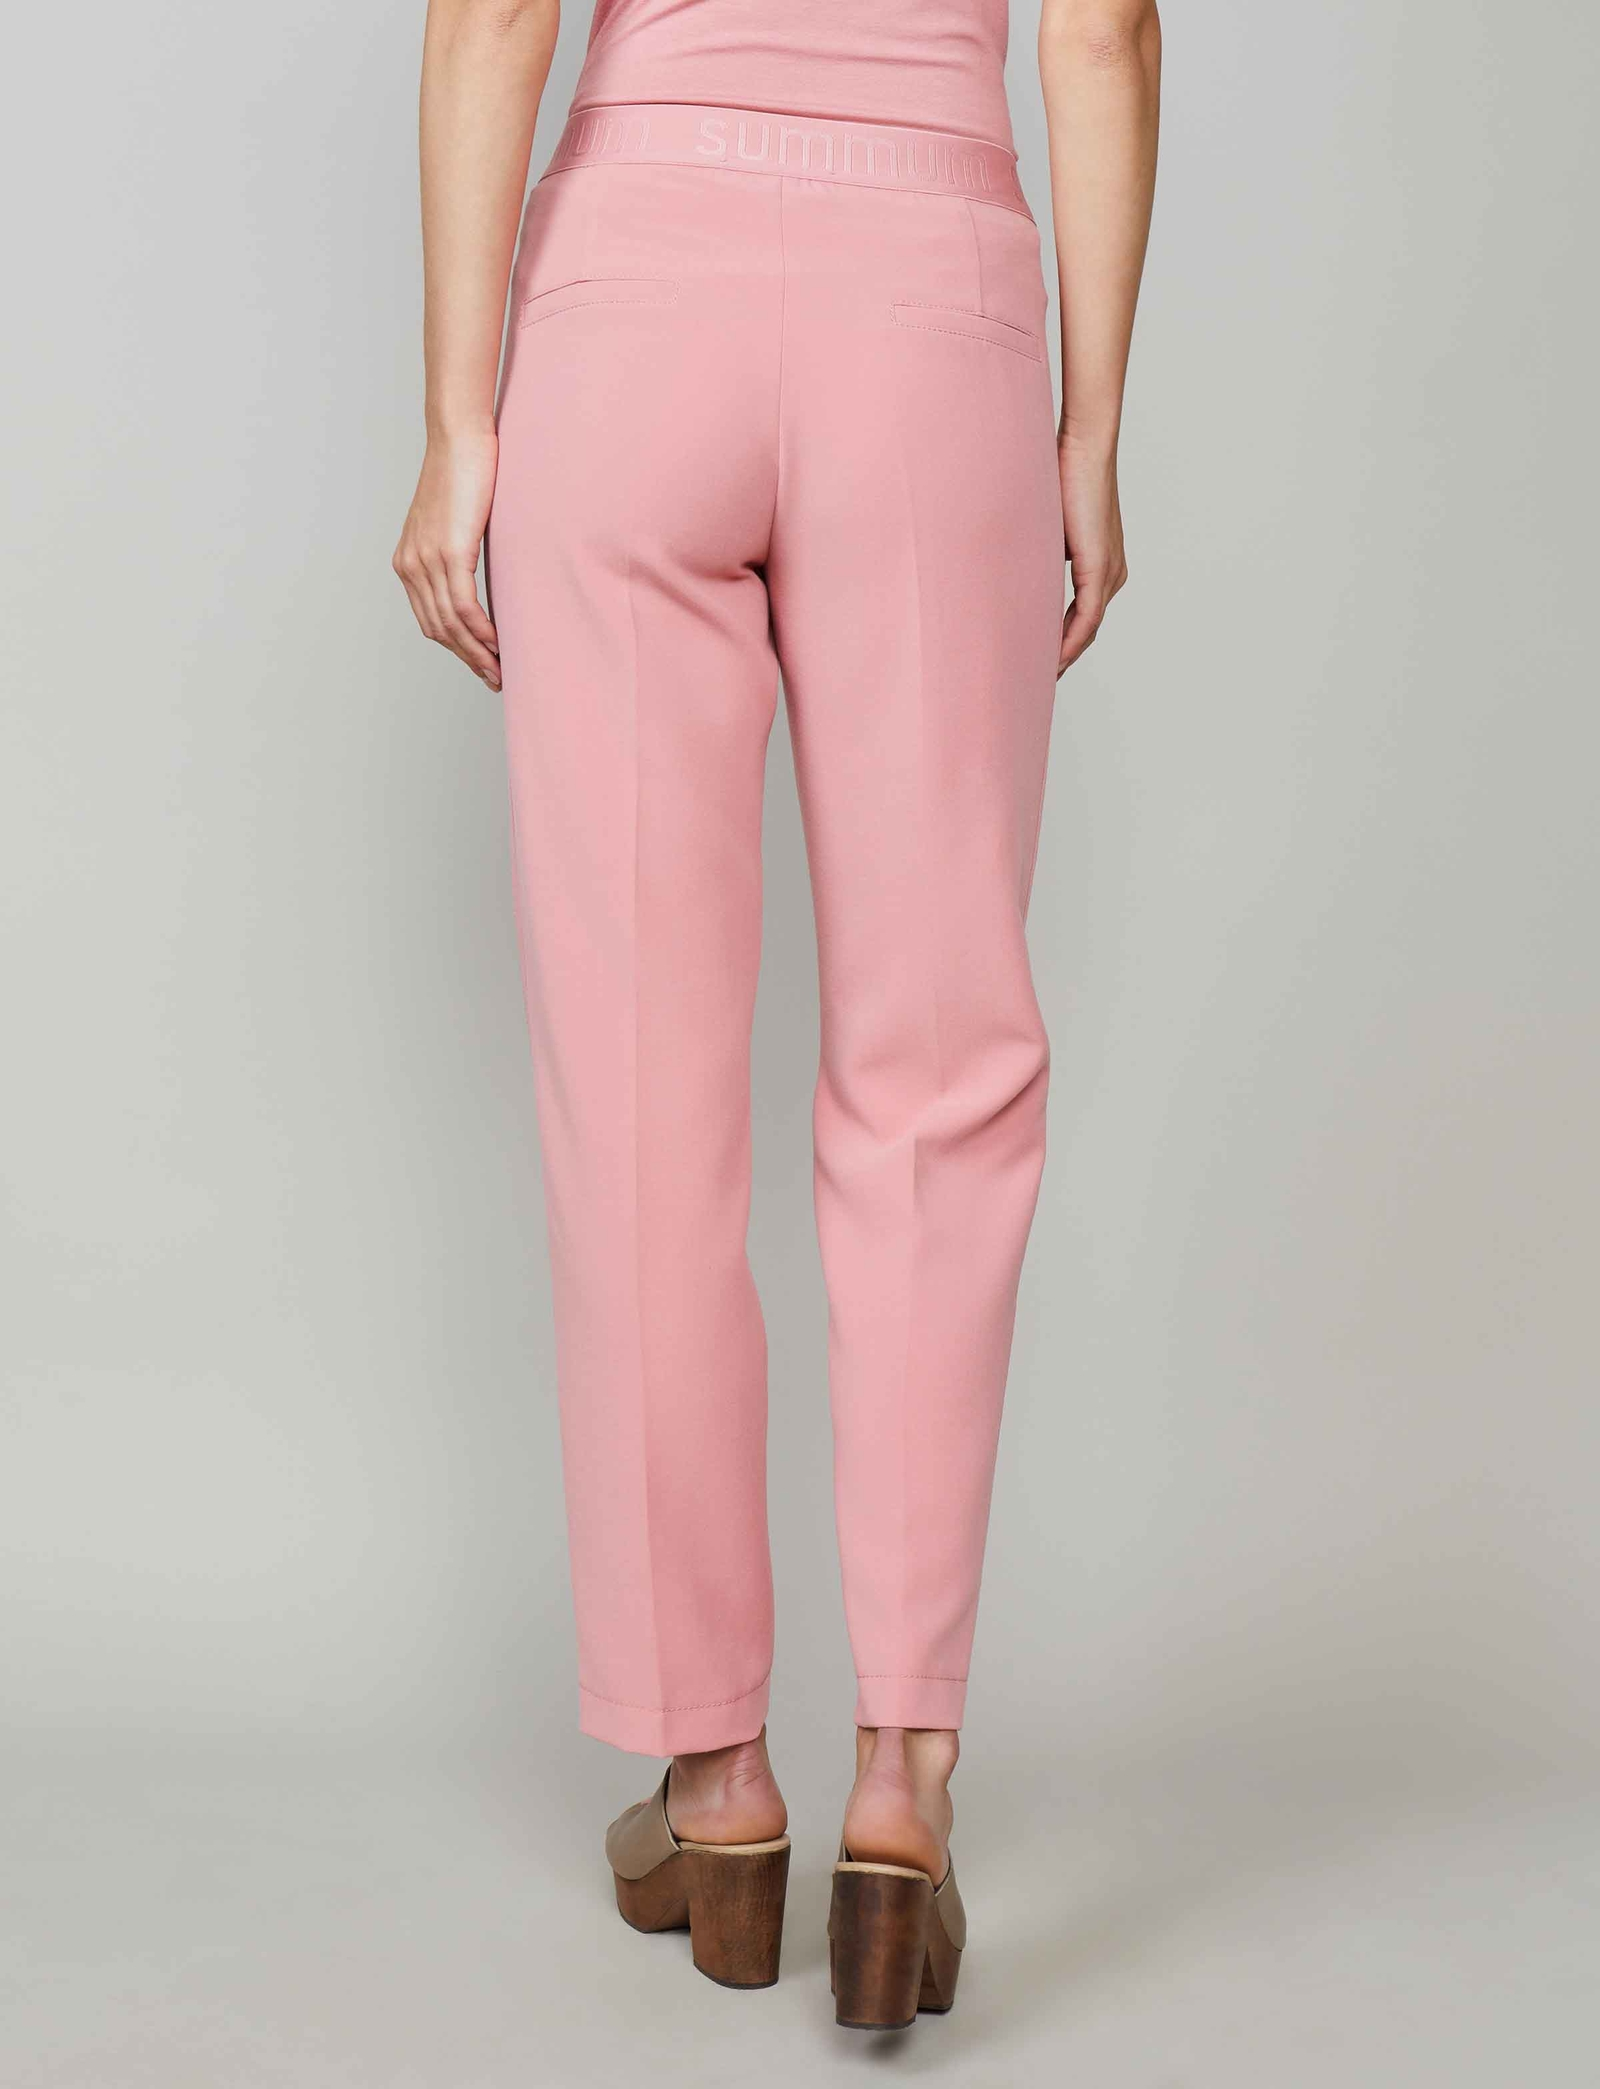 Summum Woman Trousers Structured Stretch, Blossom Pink